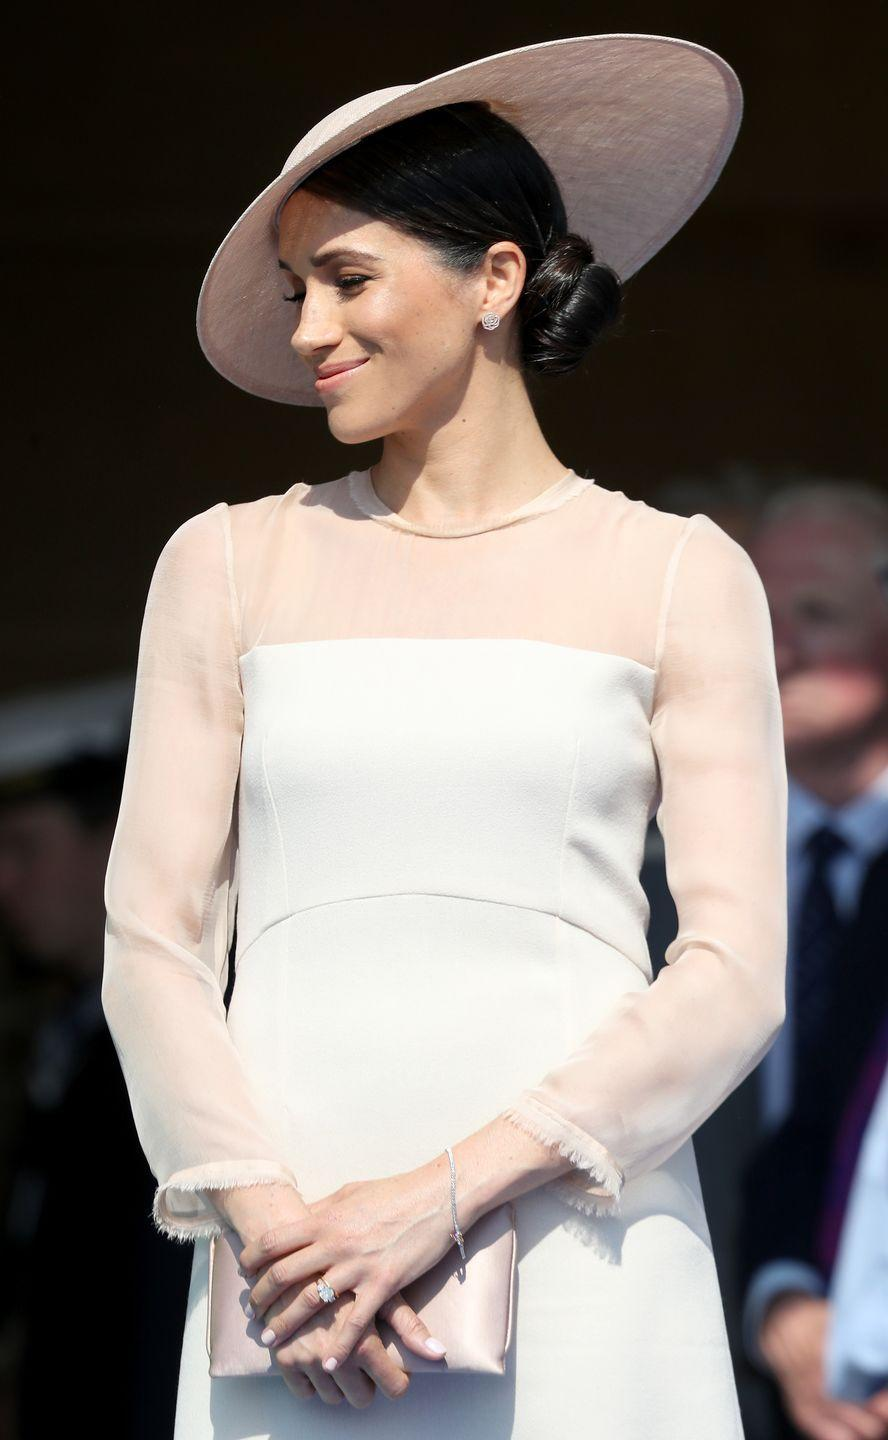 "<p>For her <a href=""https://www.townandcountrymag.com/style/fashion-trends/a20871232/meghan-markle-blush-dress-first-post-royal-wedding-appearance-garden-party/"" rel=""nofollow noopener"" target=""_blank"" data-ylk=""slk:first official appearance as a royal"" class=""link rapid-noclick-resp"">first official appearance as a royal</a>, Meghan chose <a href=""https://www.matchesfashion.com/us/products/1195653"" rel=""nofollow noopener"" target=""_blank"" data-ylk=""slk:a blush Goat dress"" class=""link rapid-noclick-resp"">a blush Goat dress</a> paired with a bespoke Philip Treacy hat.<br> </p><p><em>GOAT Flavia silk-crepe pencil dress, £590</em><br><a class=""link rapid-noclick-resp"" href=""https://go.redirectingat.com?id=74968X1596630&url=https%3A%2F%2Fwww.goatfashion.com%2F&sref=https%3A%2F%2Fwww.townandcountrymag.com%2Fstyle%2Ffashion-trends%2Fg3272%2Fmeghan-markle-preppy-style%2F"" rel=""nofollow noopener"" target=""_blank"" data-ylk=""slk:SHOP NOW"">SHOP NOW</a></p>"